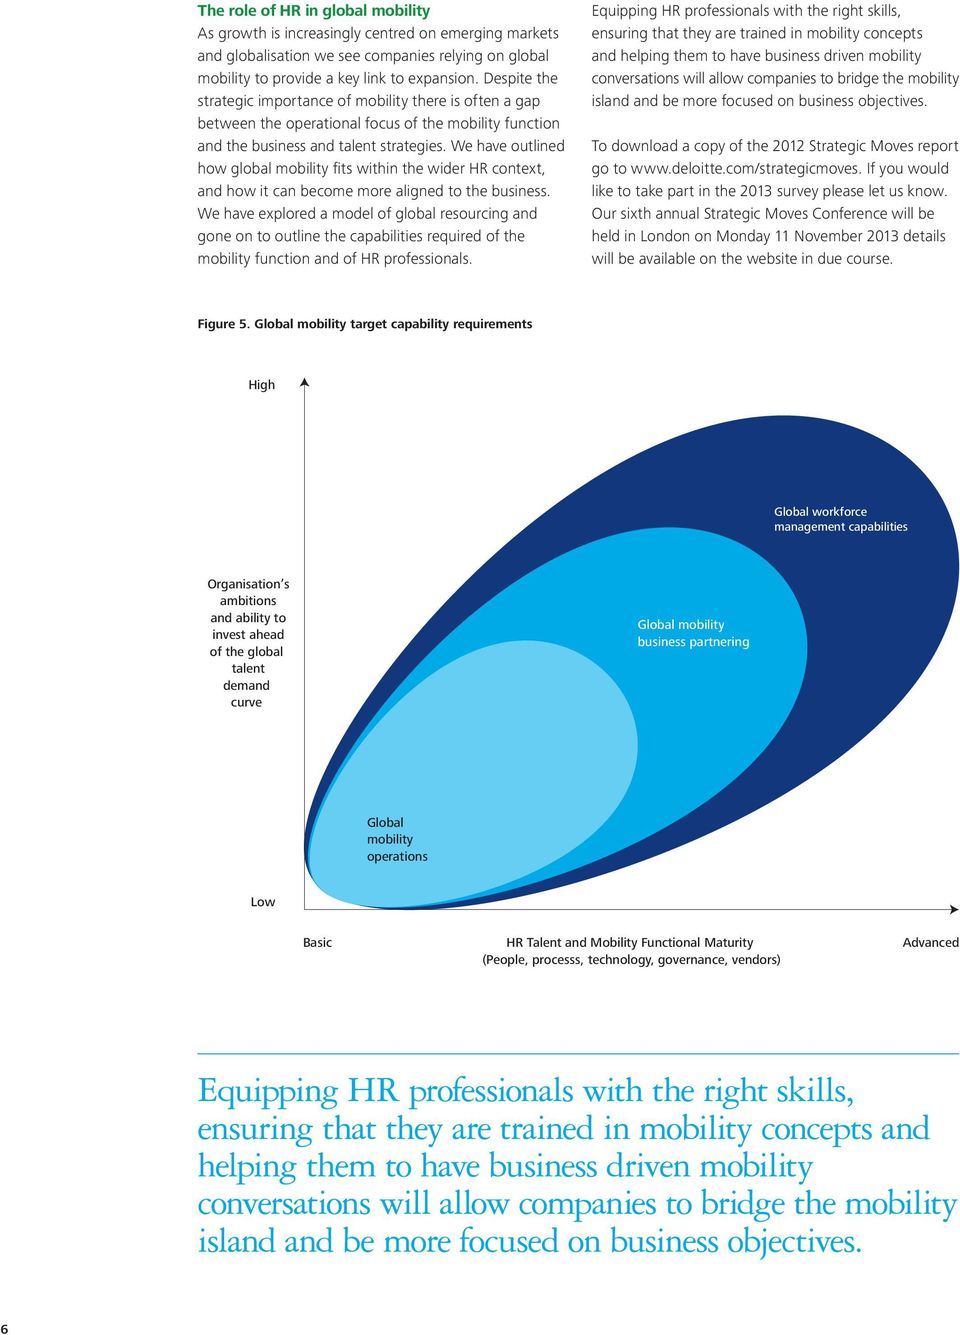 We have outlined how global mobility fits within the wider HR context, and how it can become more aligned to the business.